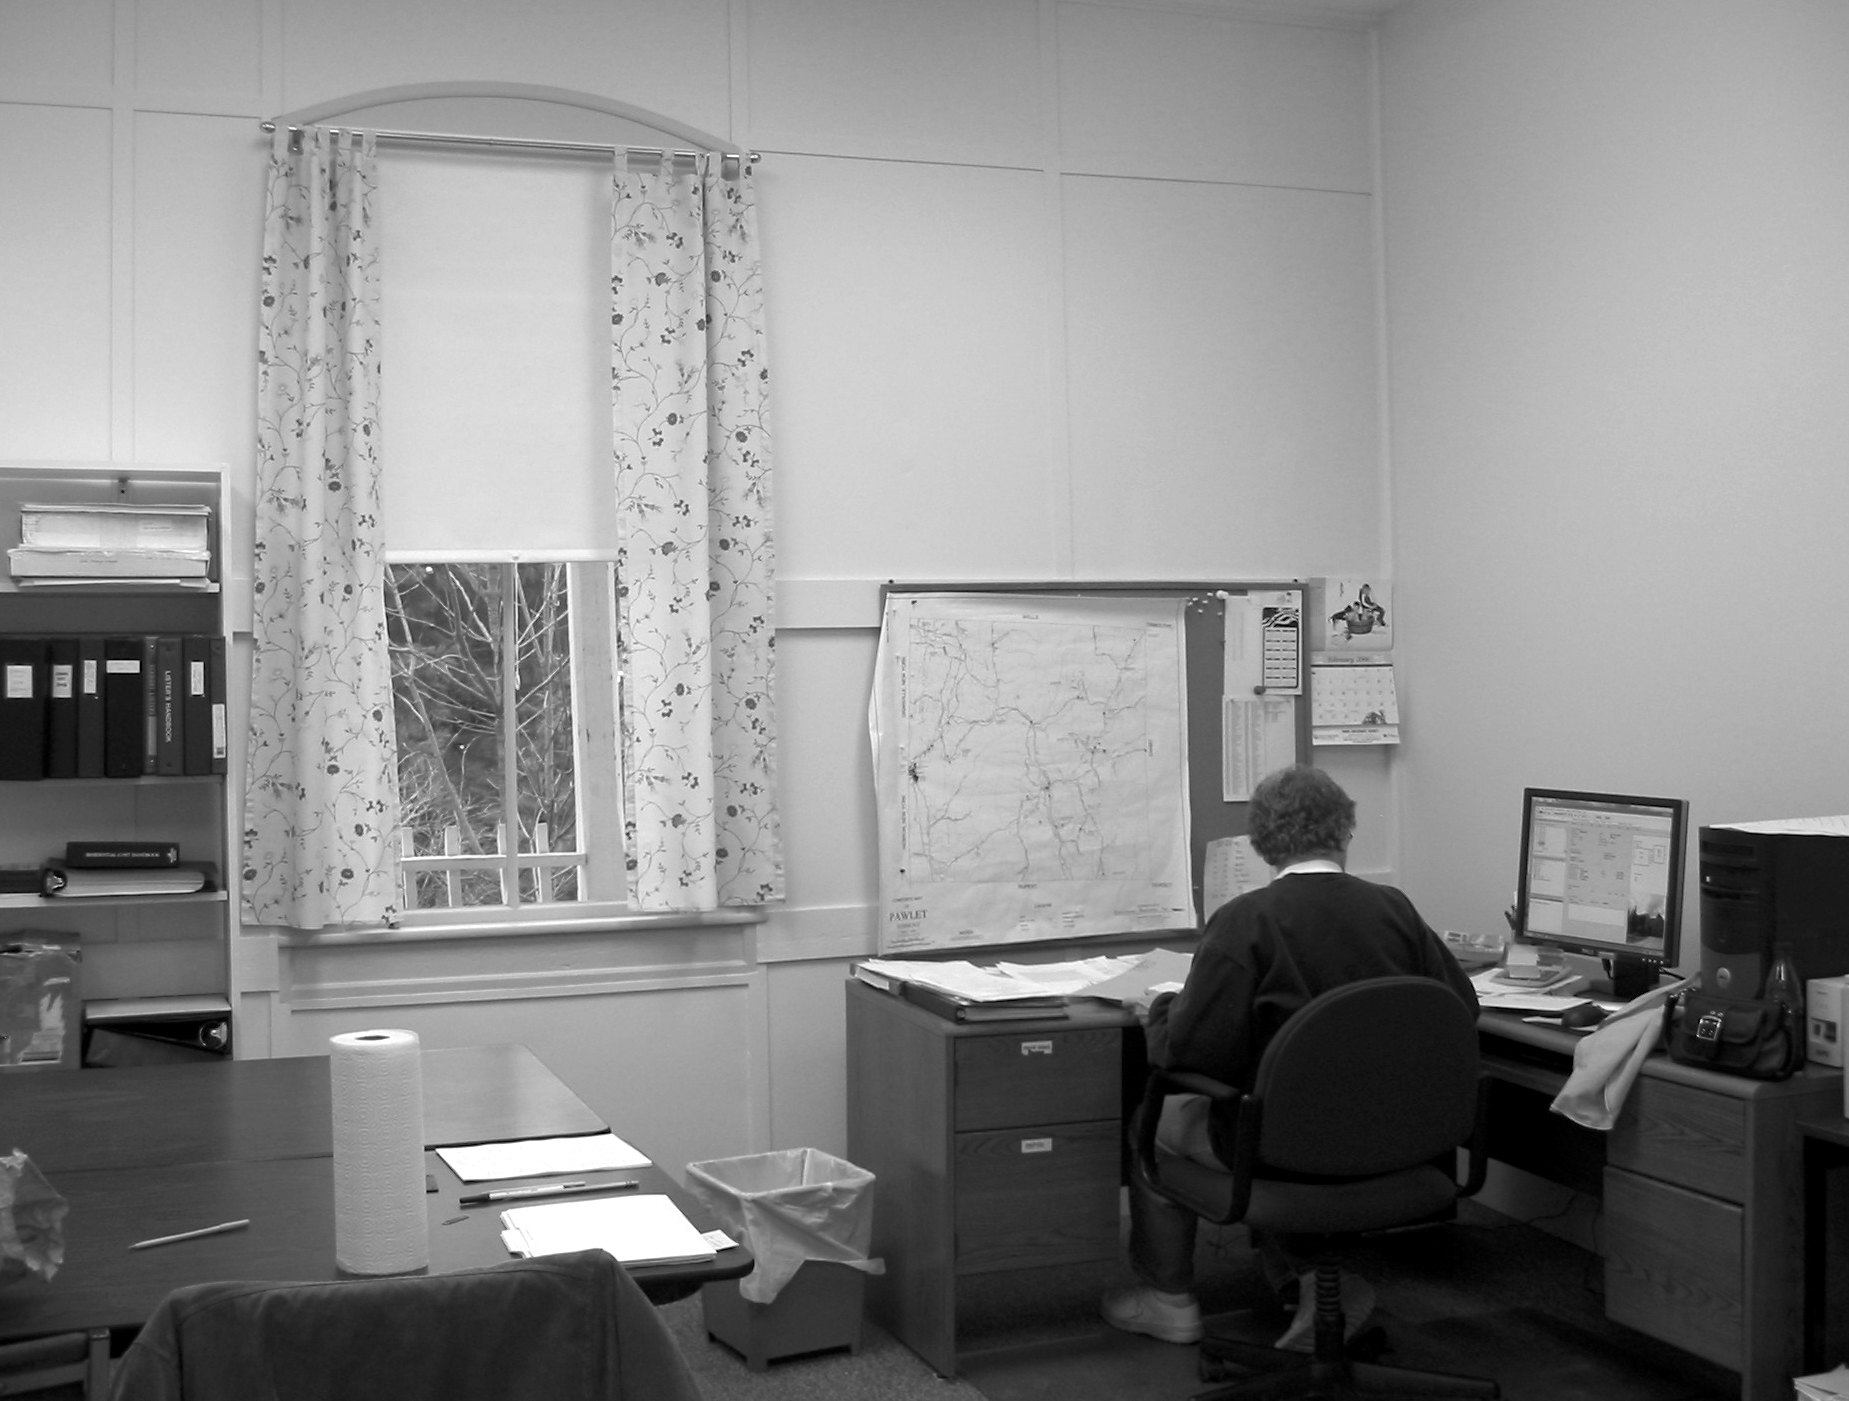 Lister Elaine Decker works in the listers' office at the Town Hall.